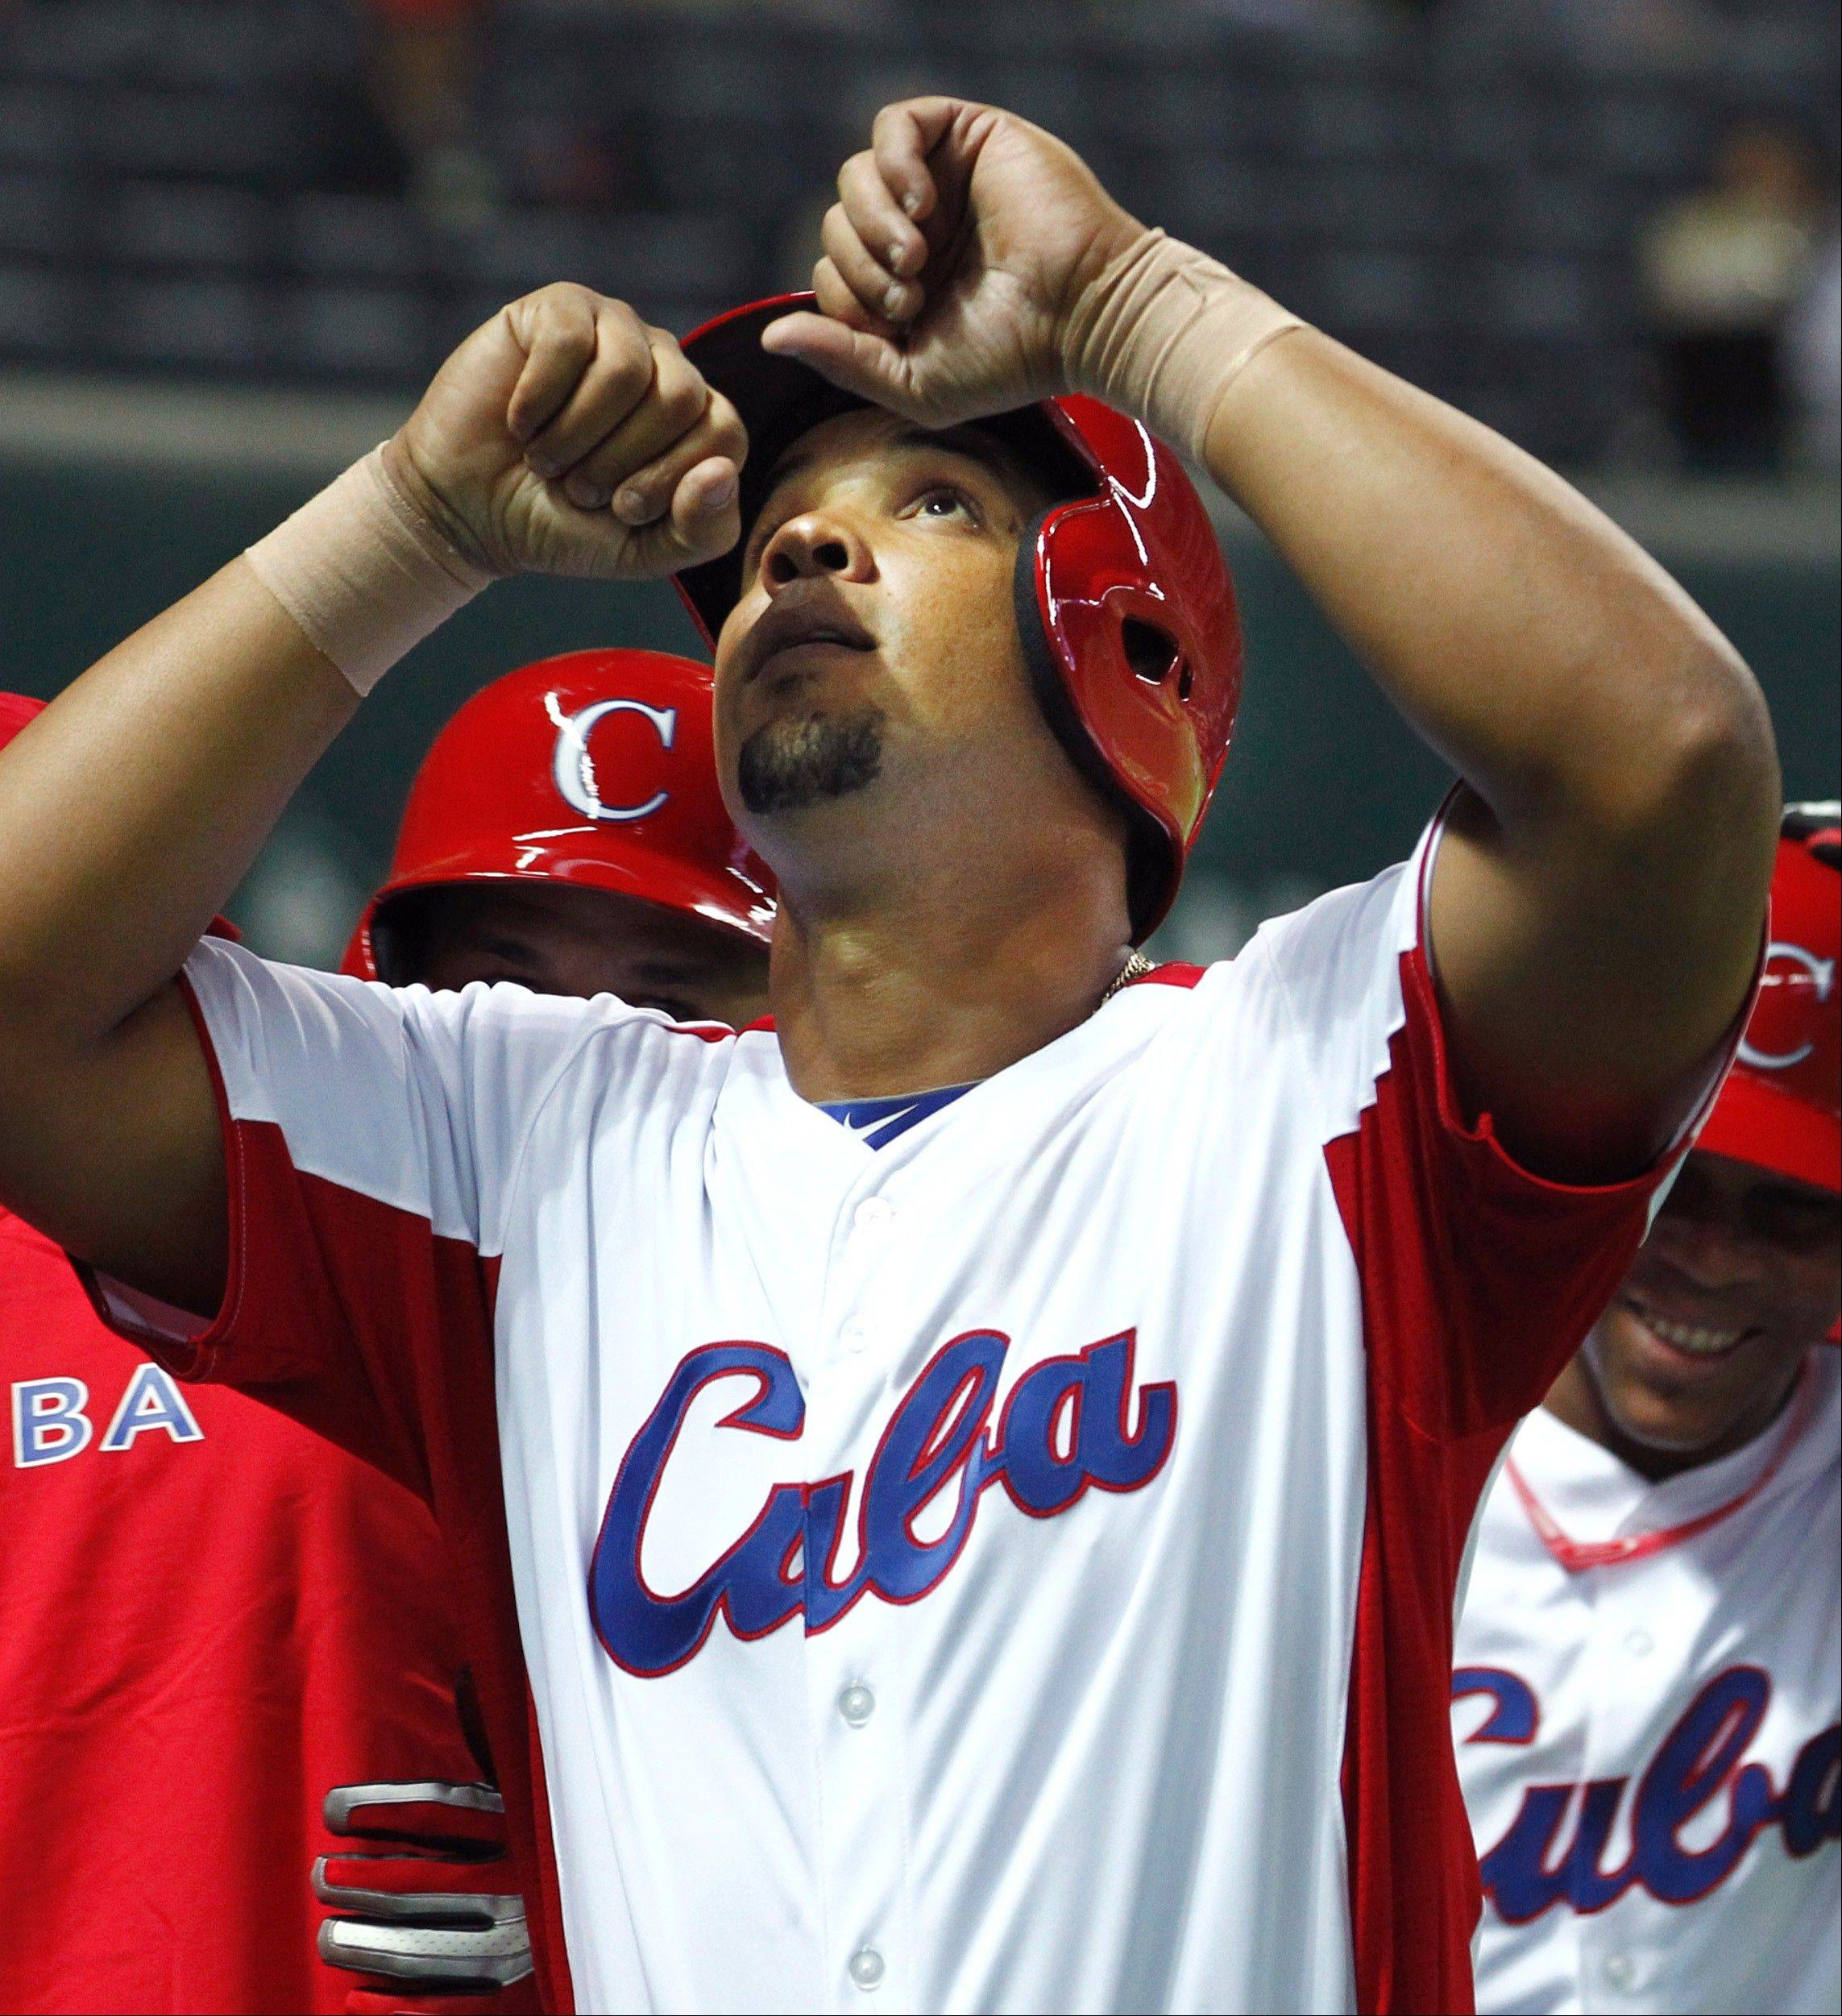 Cuba�s first baseman Jose Abreu reacts after hitting a grand slam off China�s Liu Yu in the fifth inning of their World Baseball Classic first round game in Fukuoka, Japan, Monday, March 4, 2013. (AP Photo/Koji Sasahara)